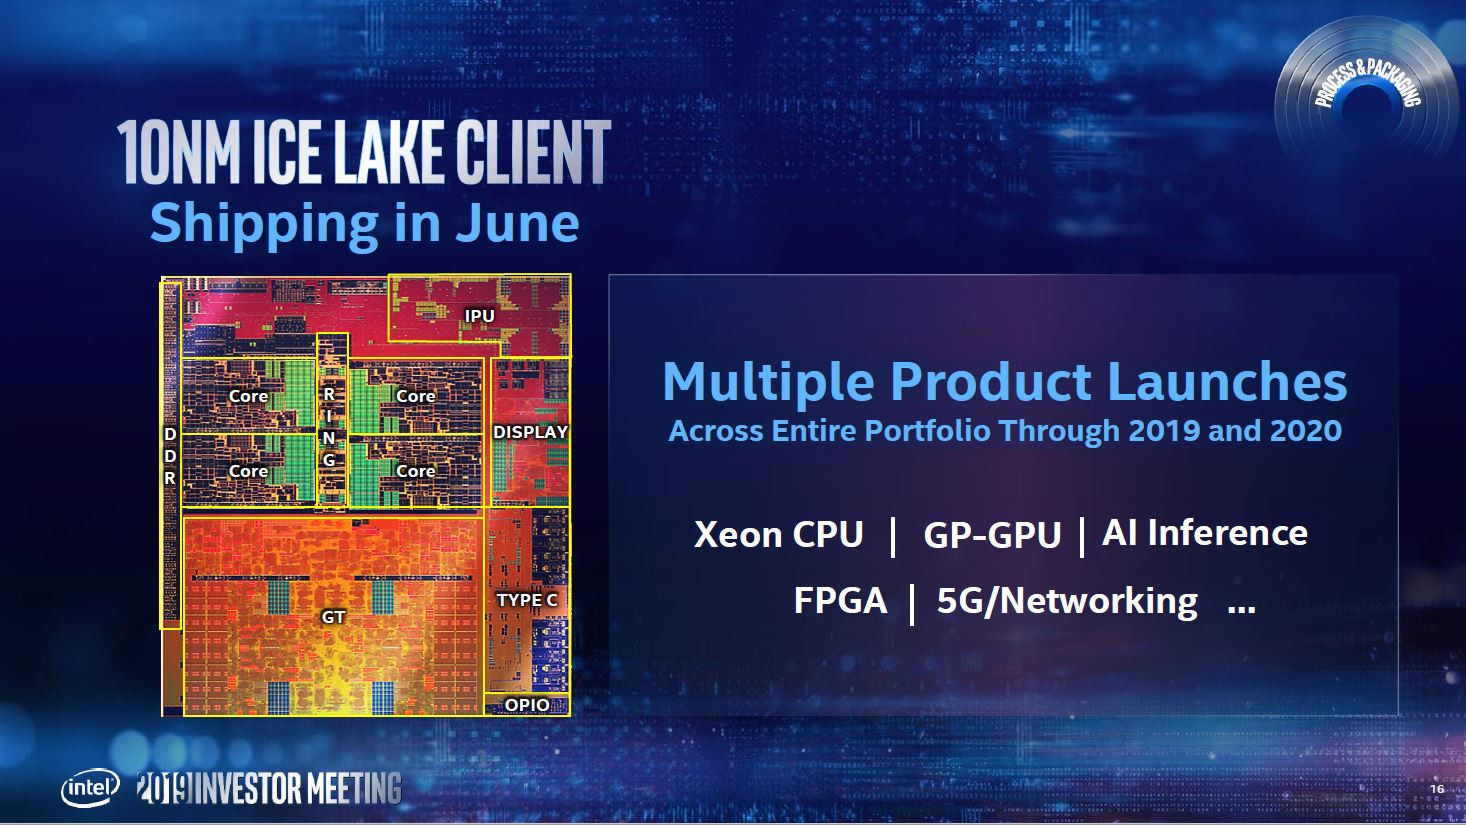 Intel Switches Gears to 7nm Post 10nm, First Node Live in